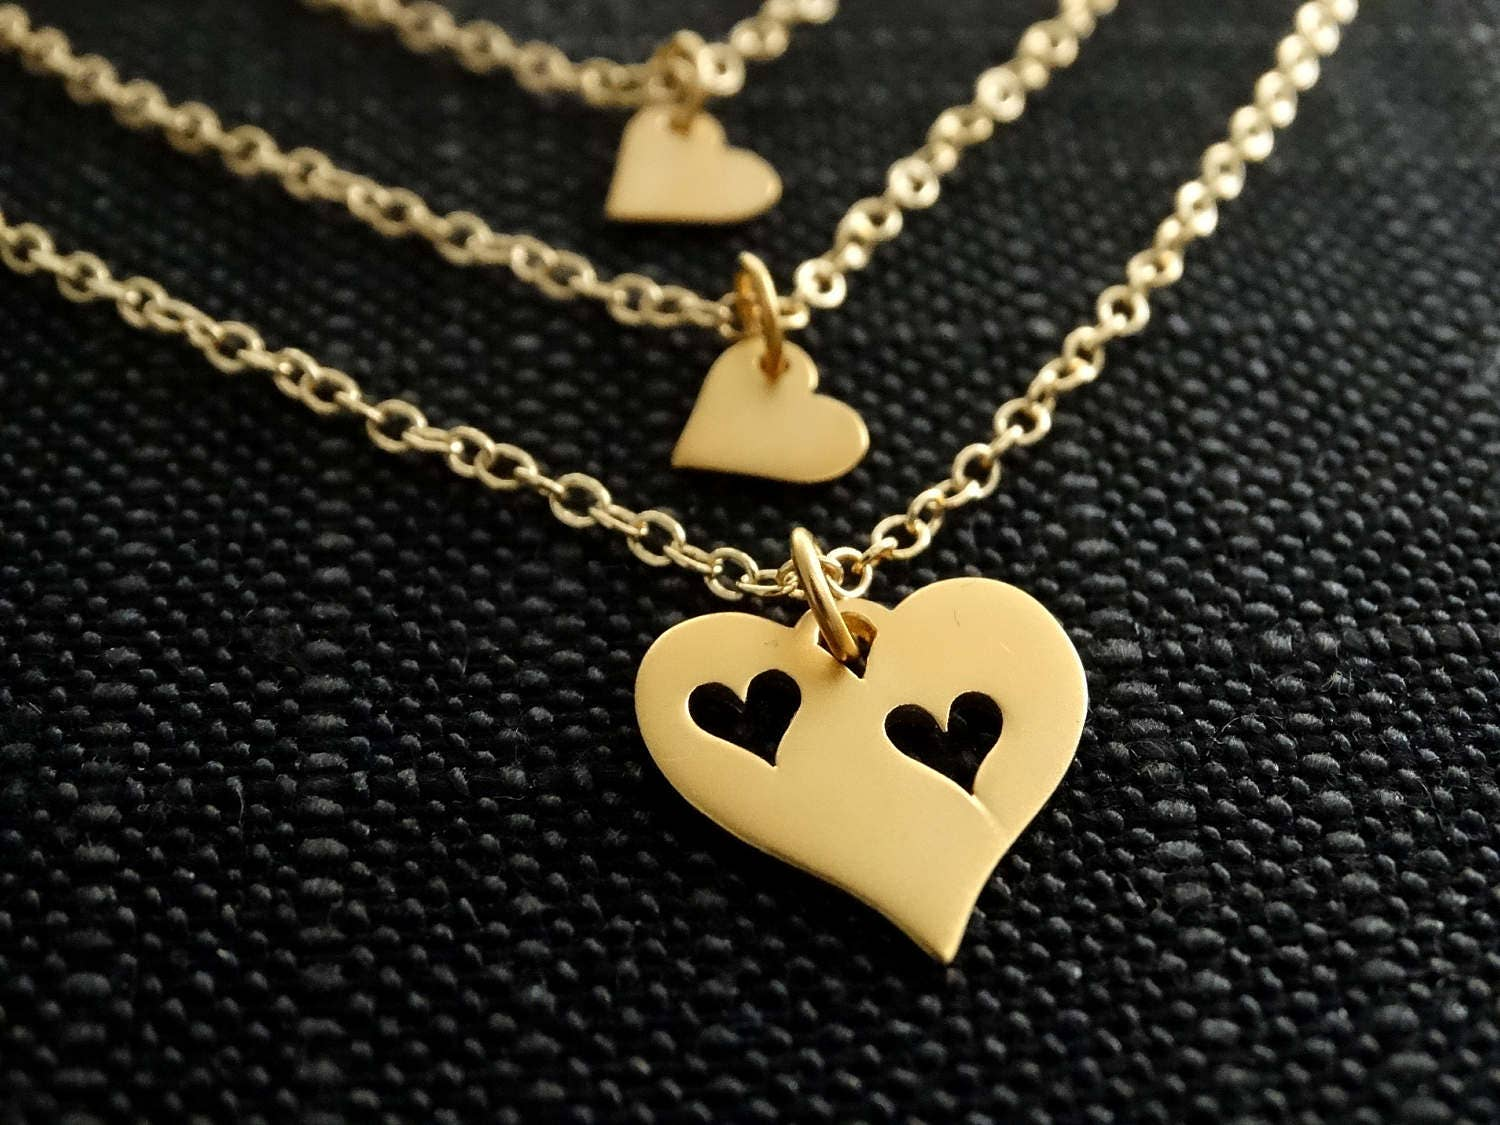 47d73f9e4959b Mother Daughter Necklace Mother's Necklace heart mother sets ...